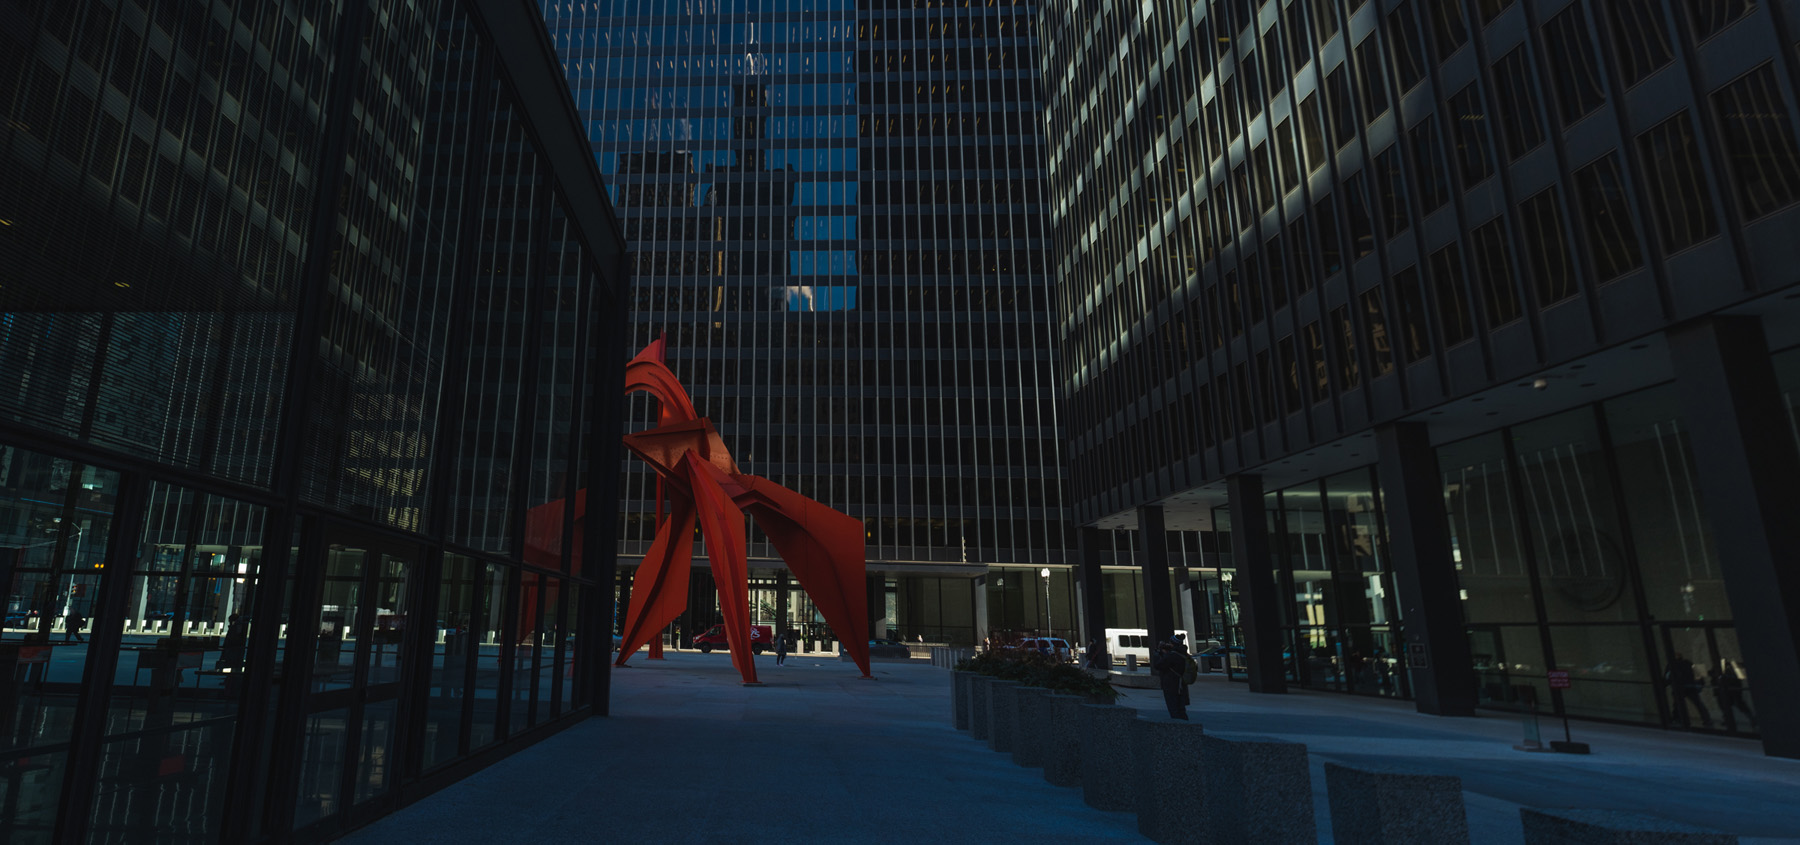 a picture of Calder's Flamingo slightly obscured by the US Post office building and you can see the Sears tower reflected on the building behind  the Flamingo.